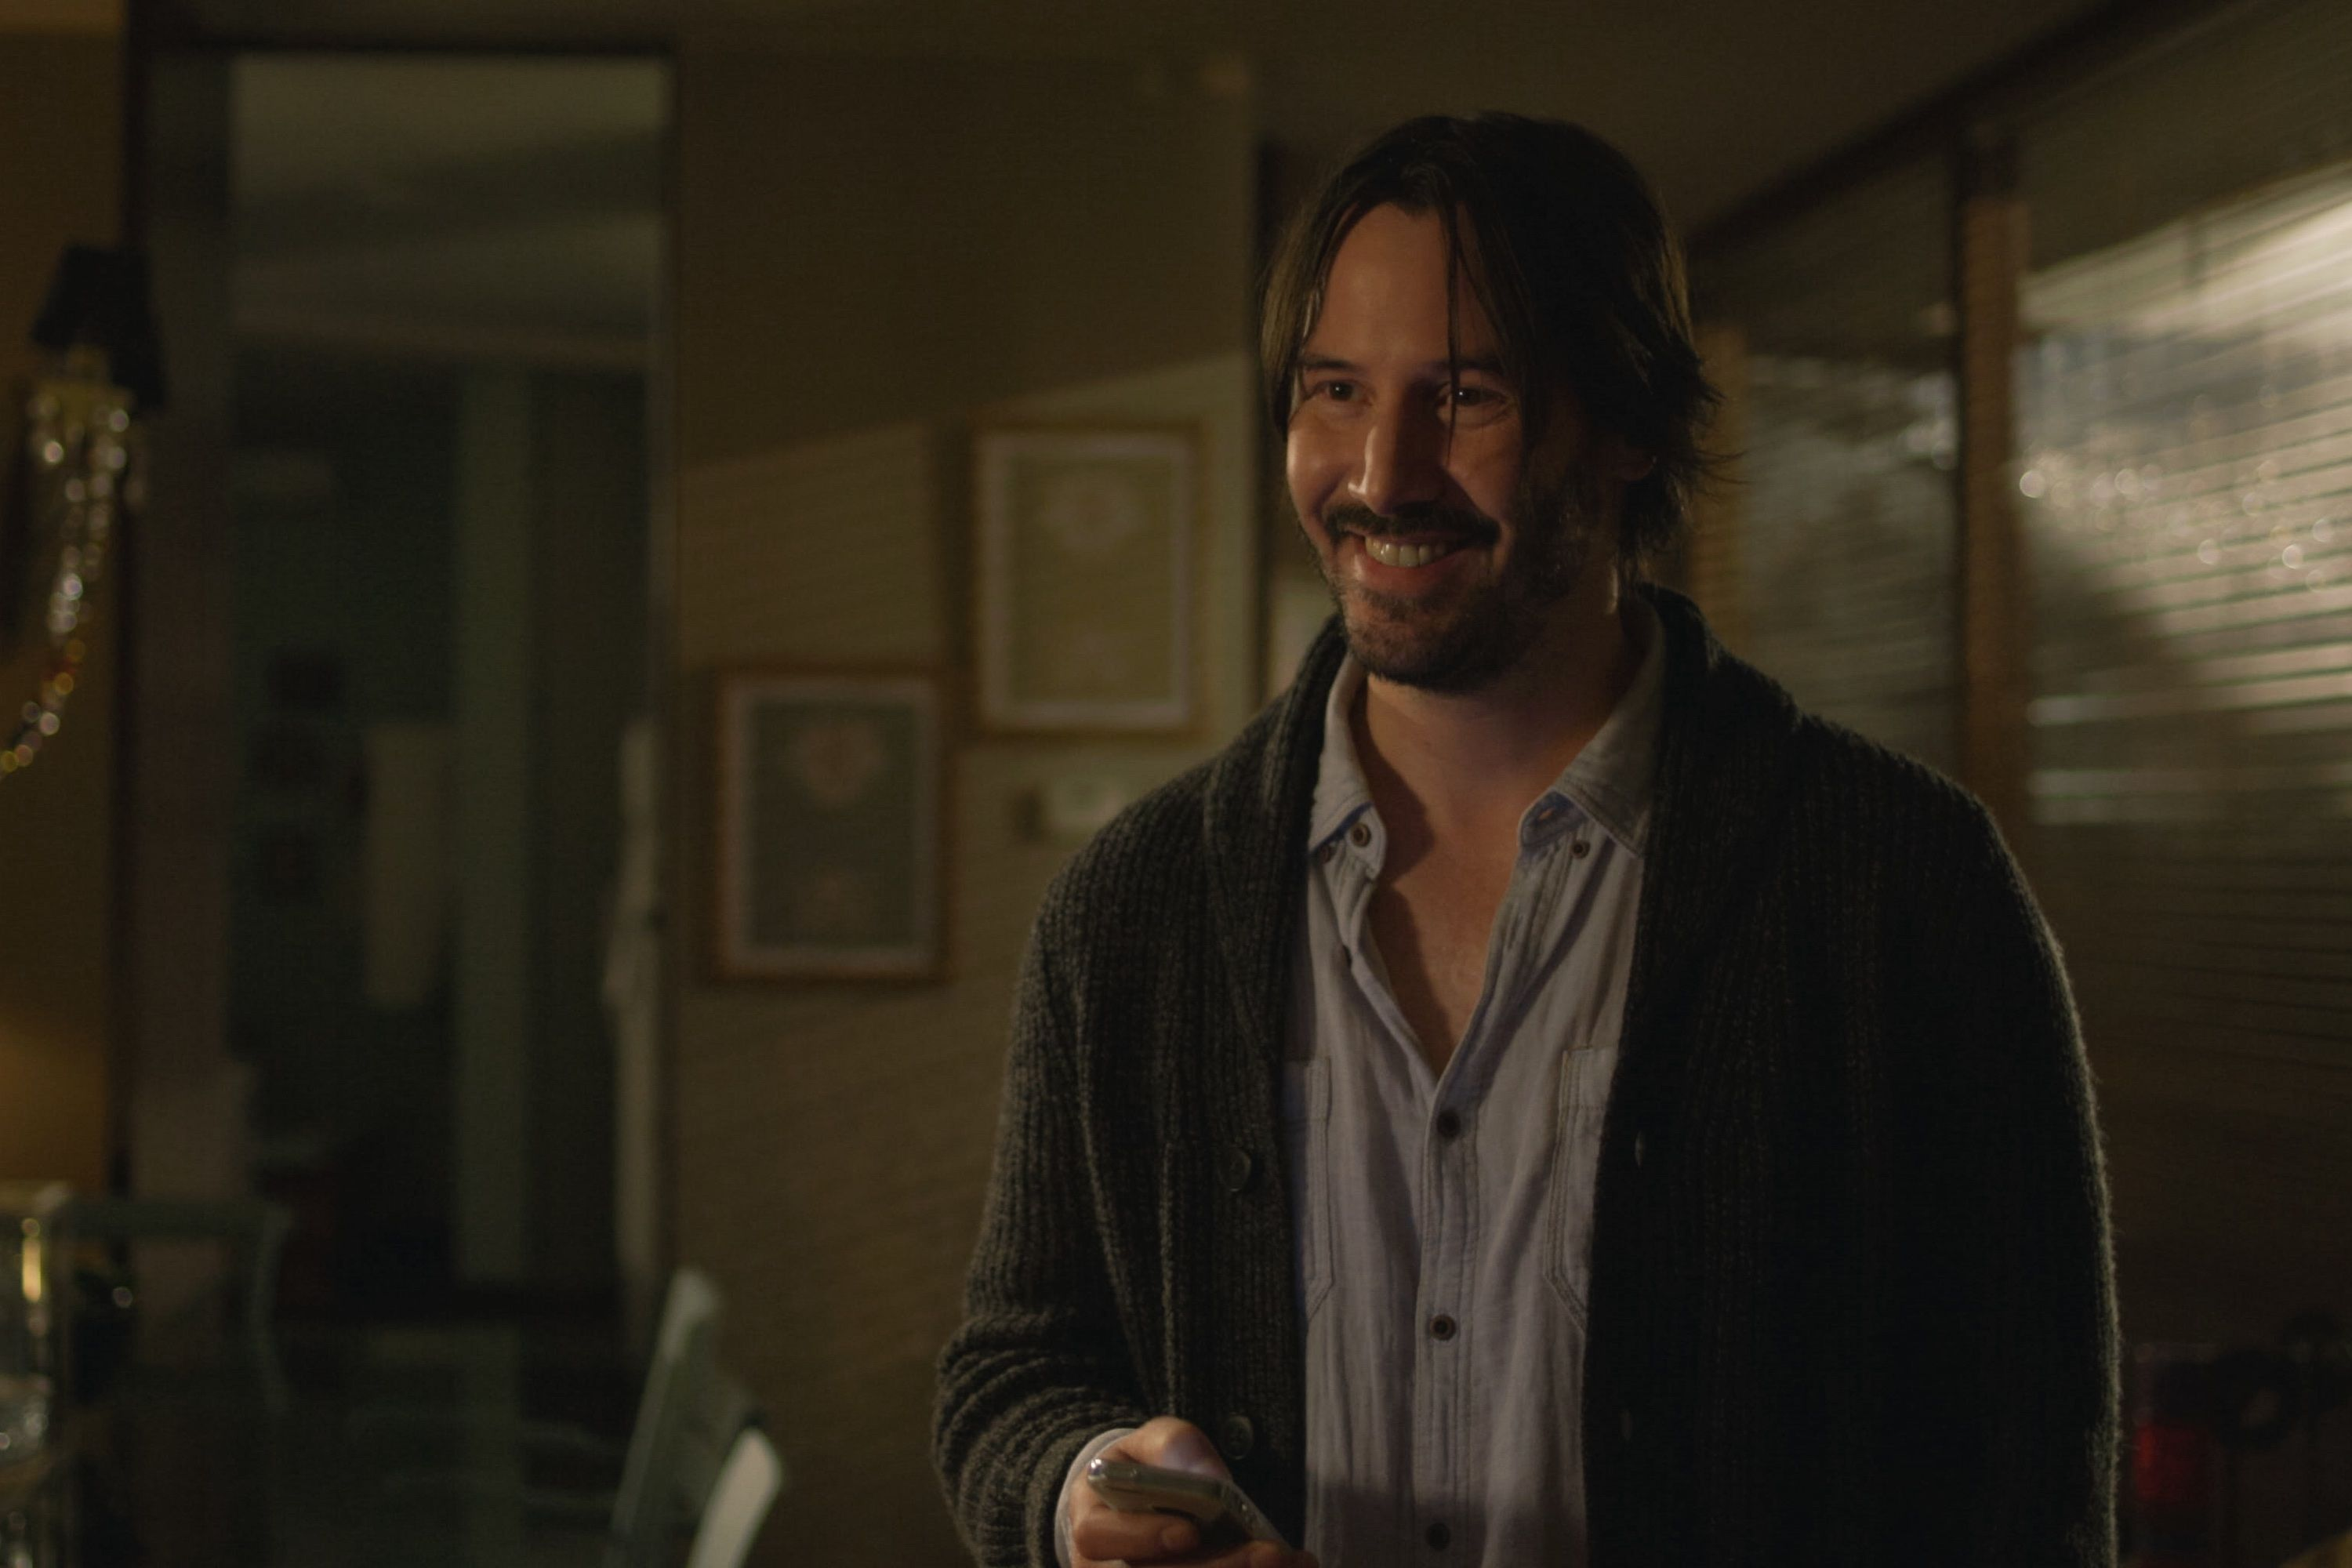 Keanu is everyone keanu reeves pictures - Keanu Reeves Knock Knock Interview